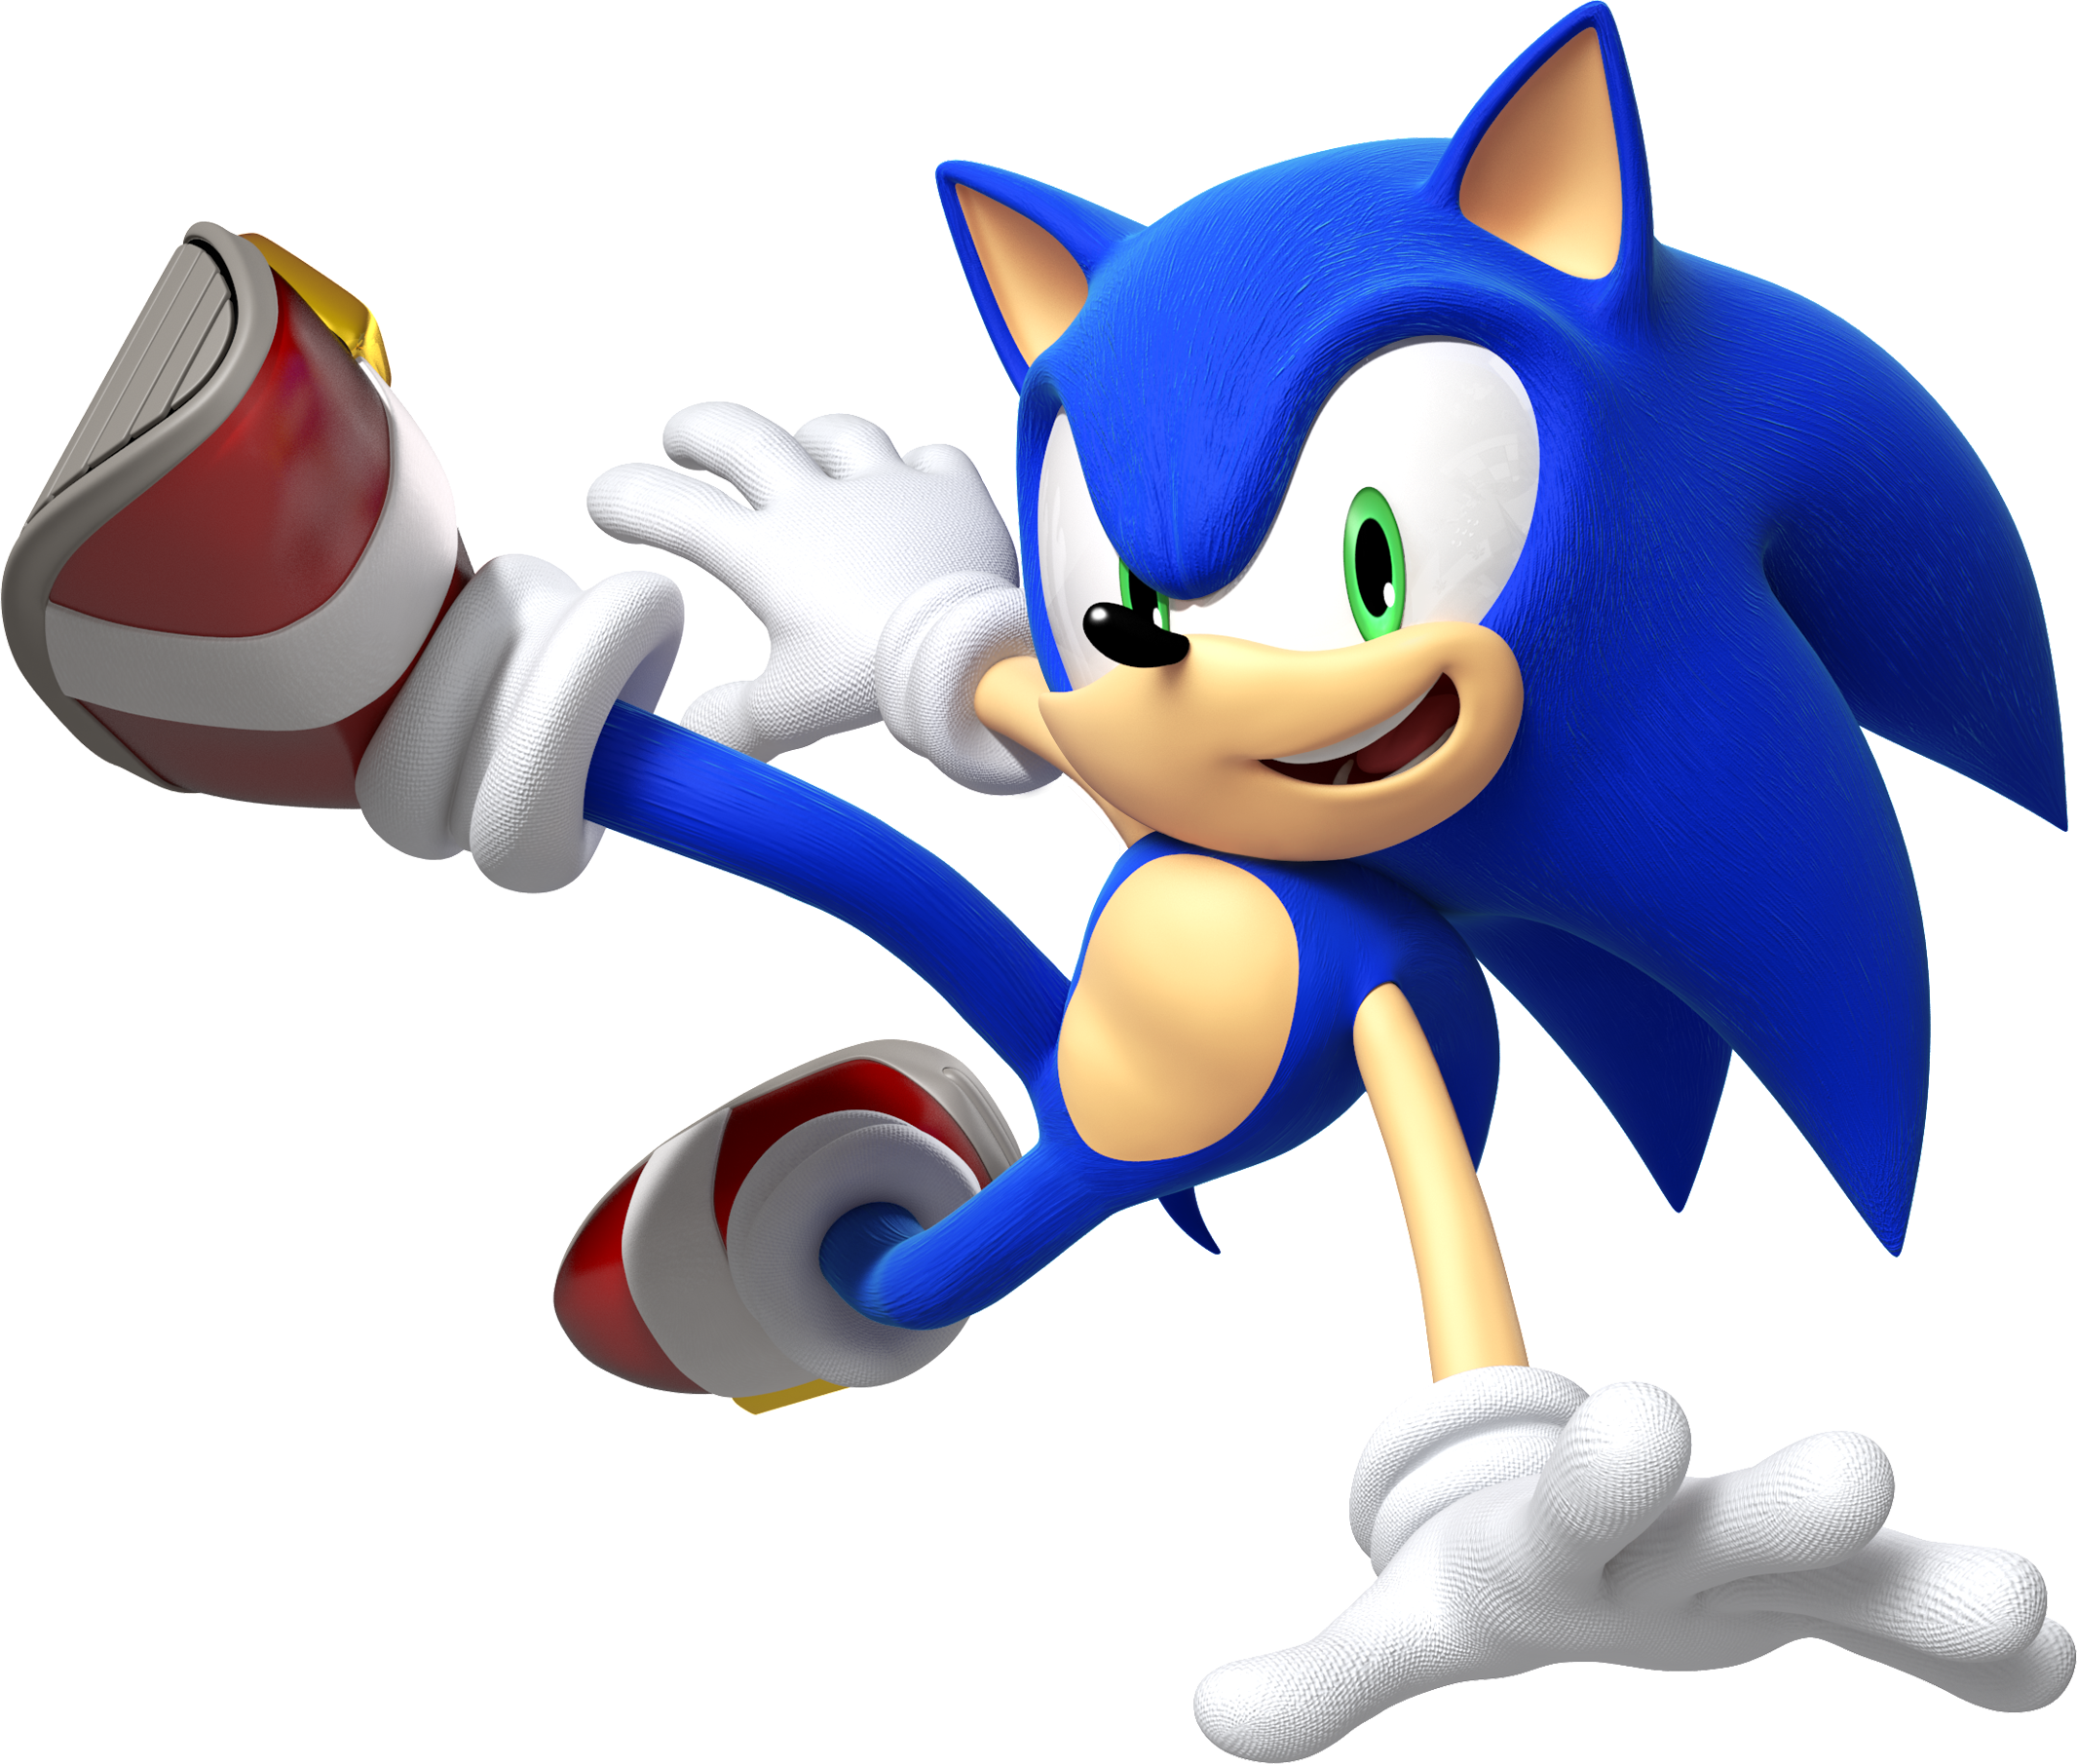 Clipart Png Sonic Download image #20644